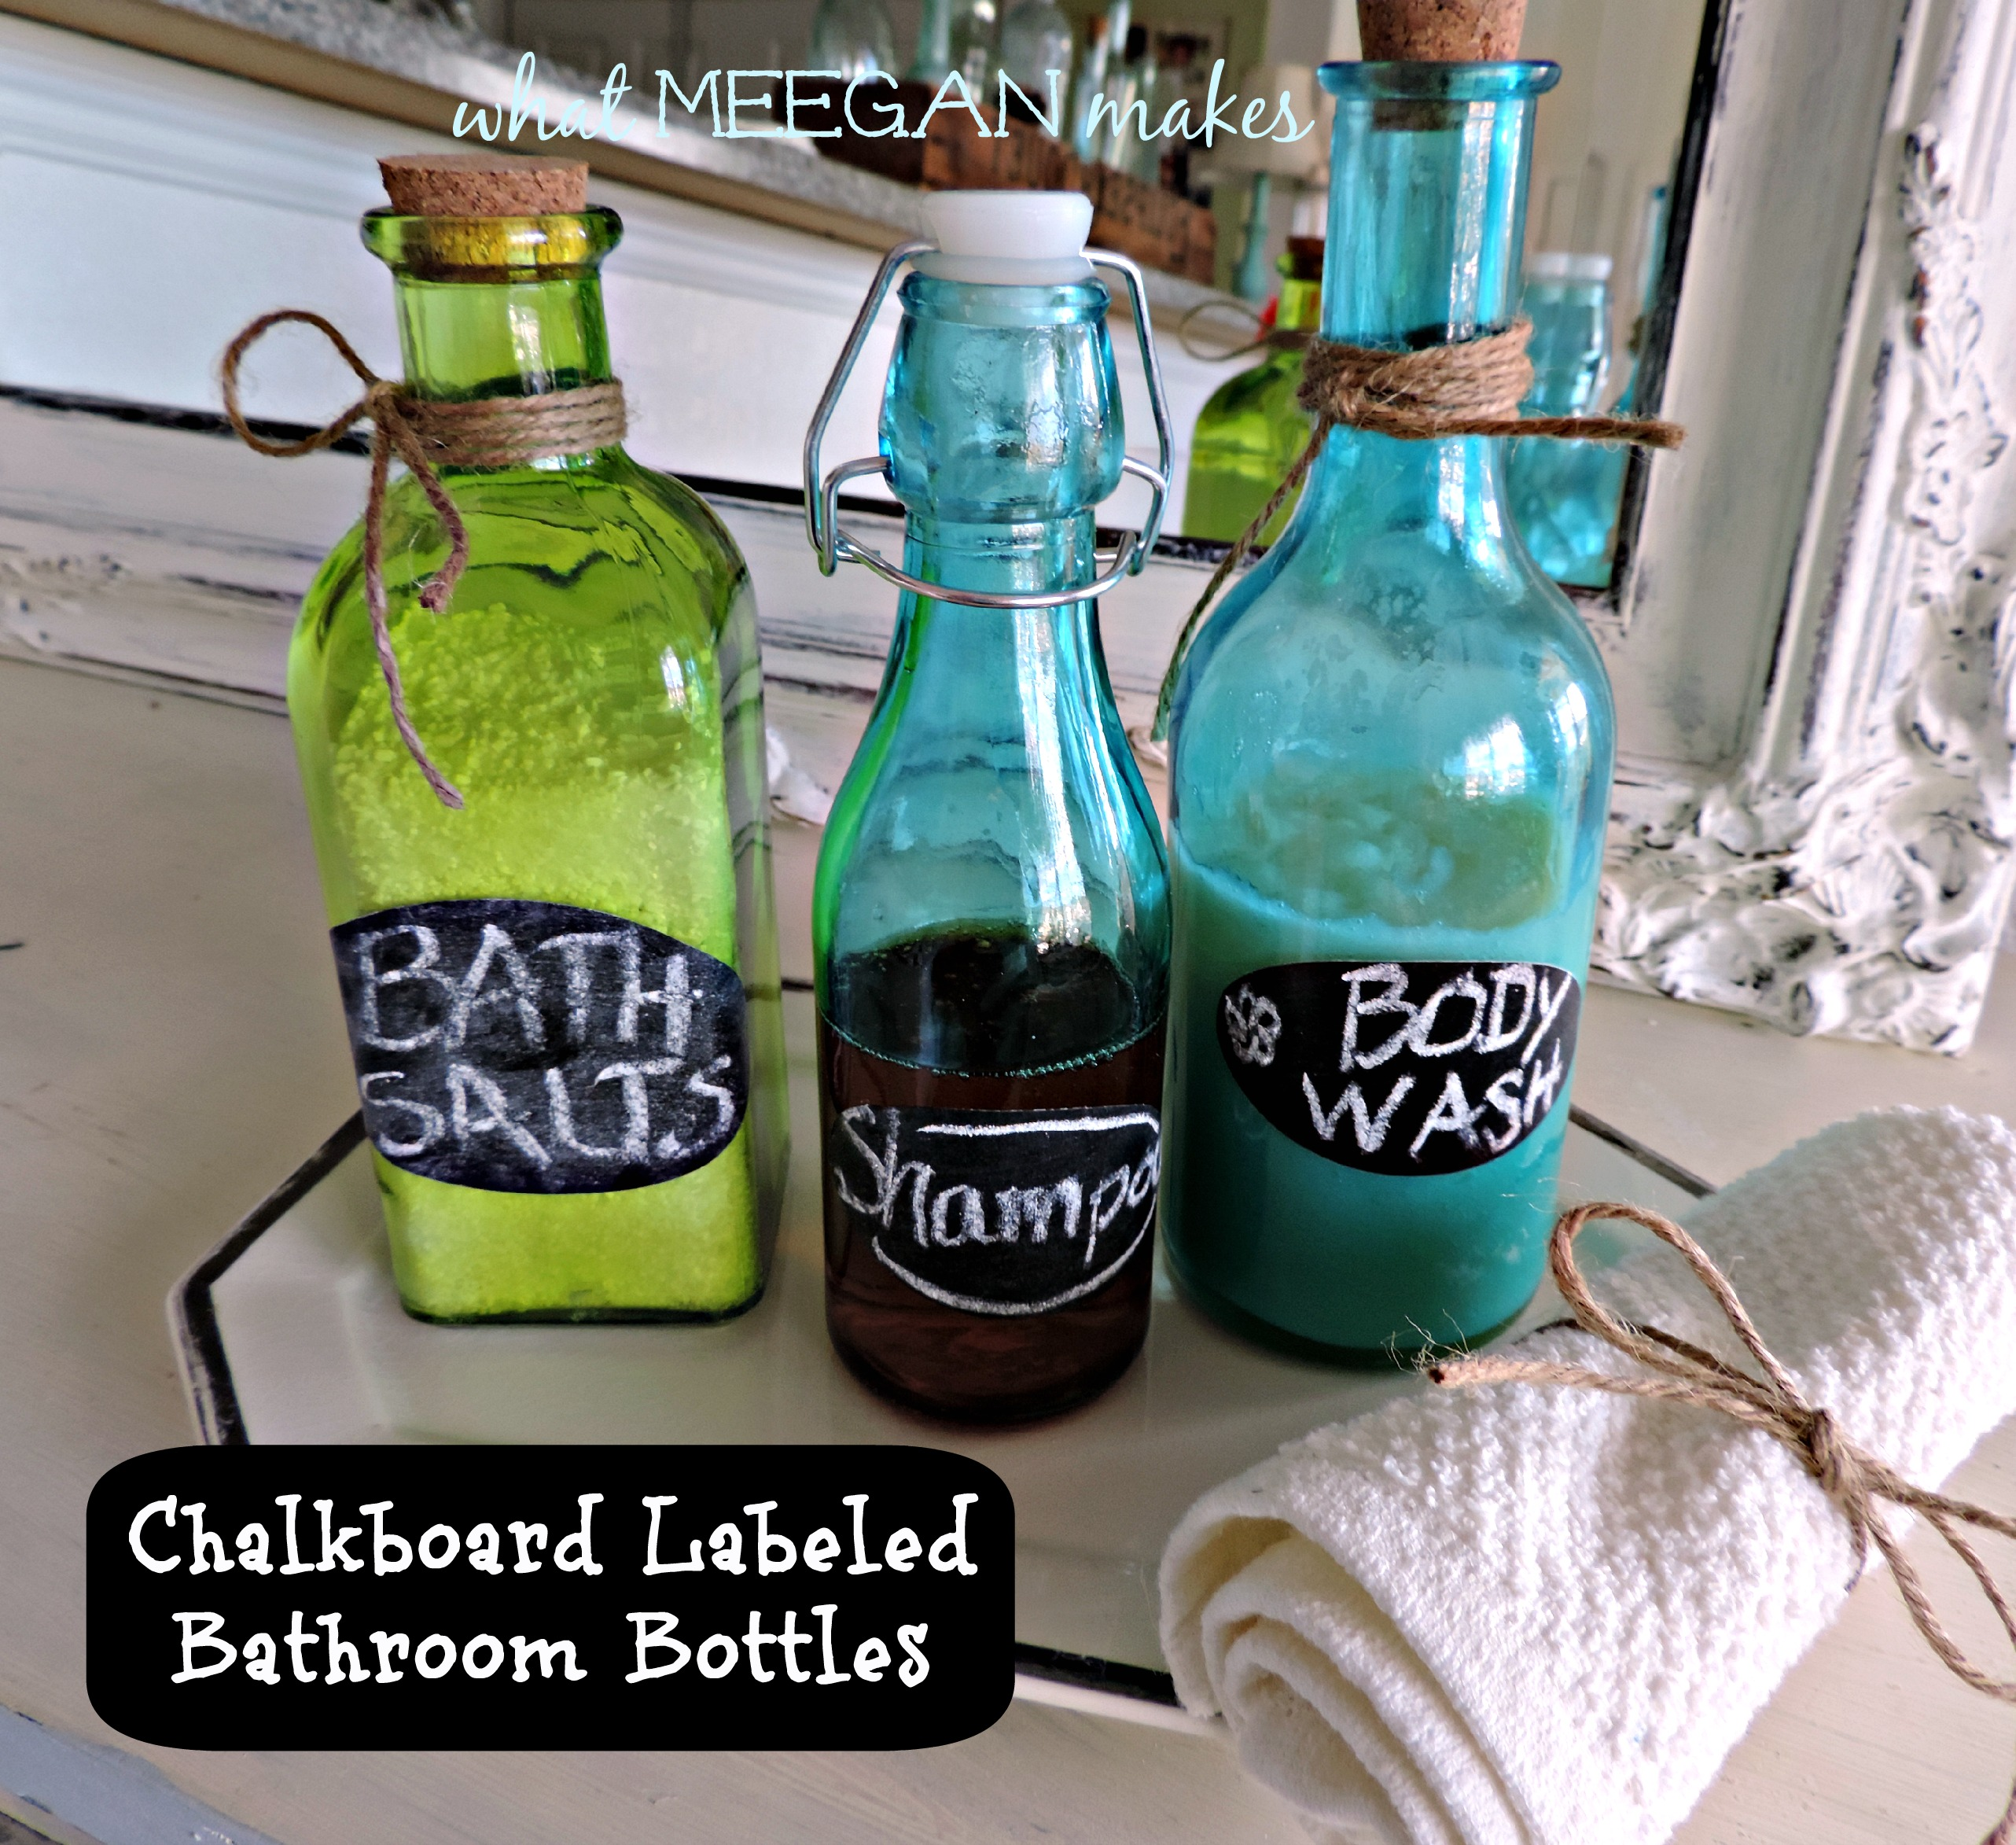 Chalkboard Labeled Bathroom Bottles